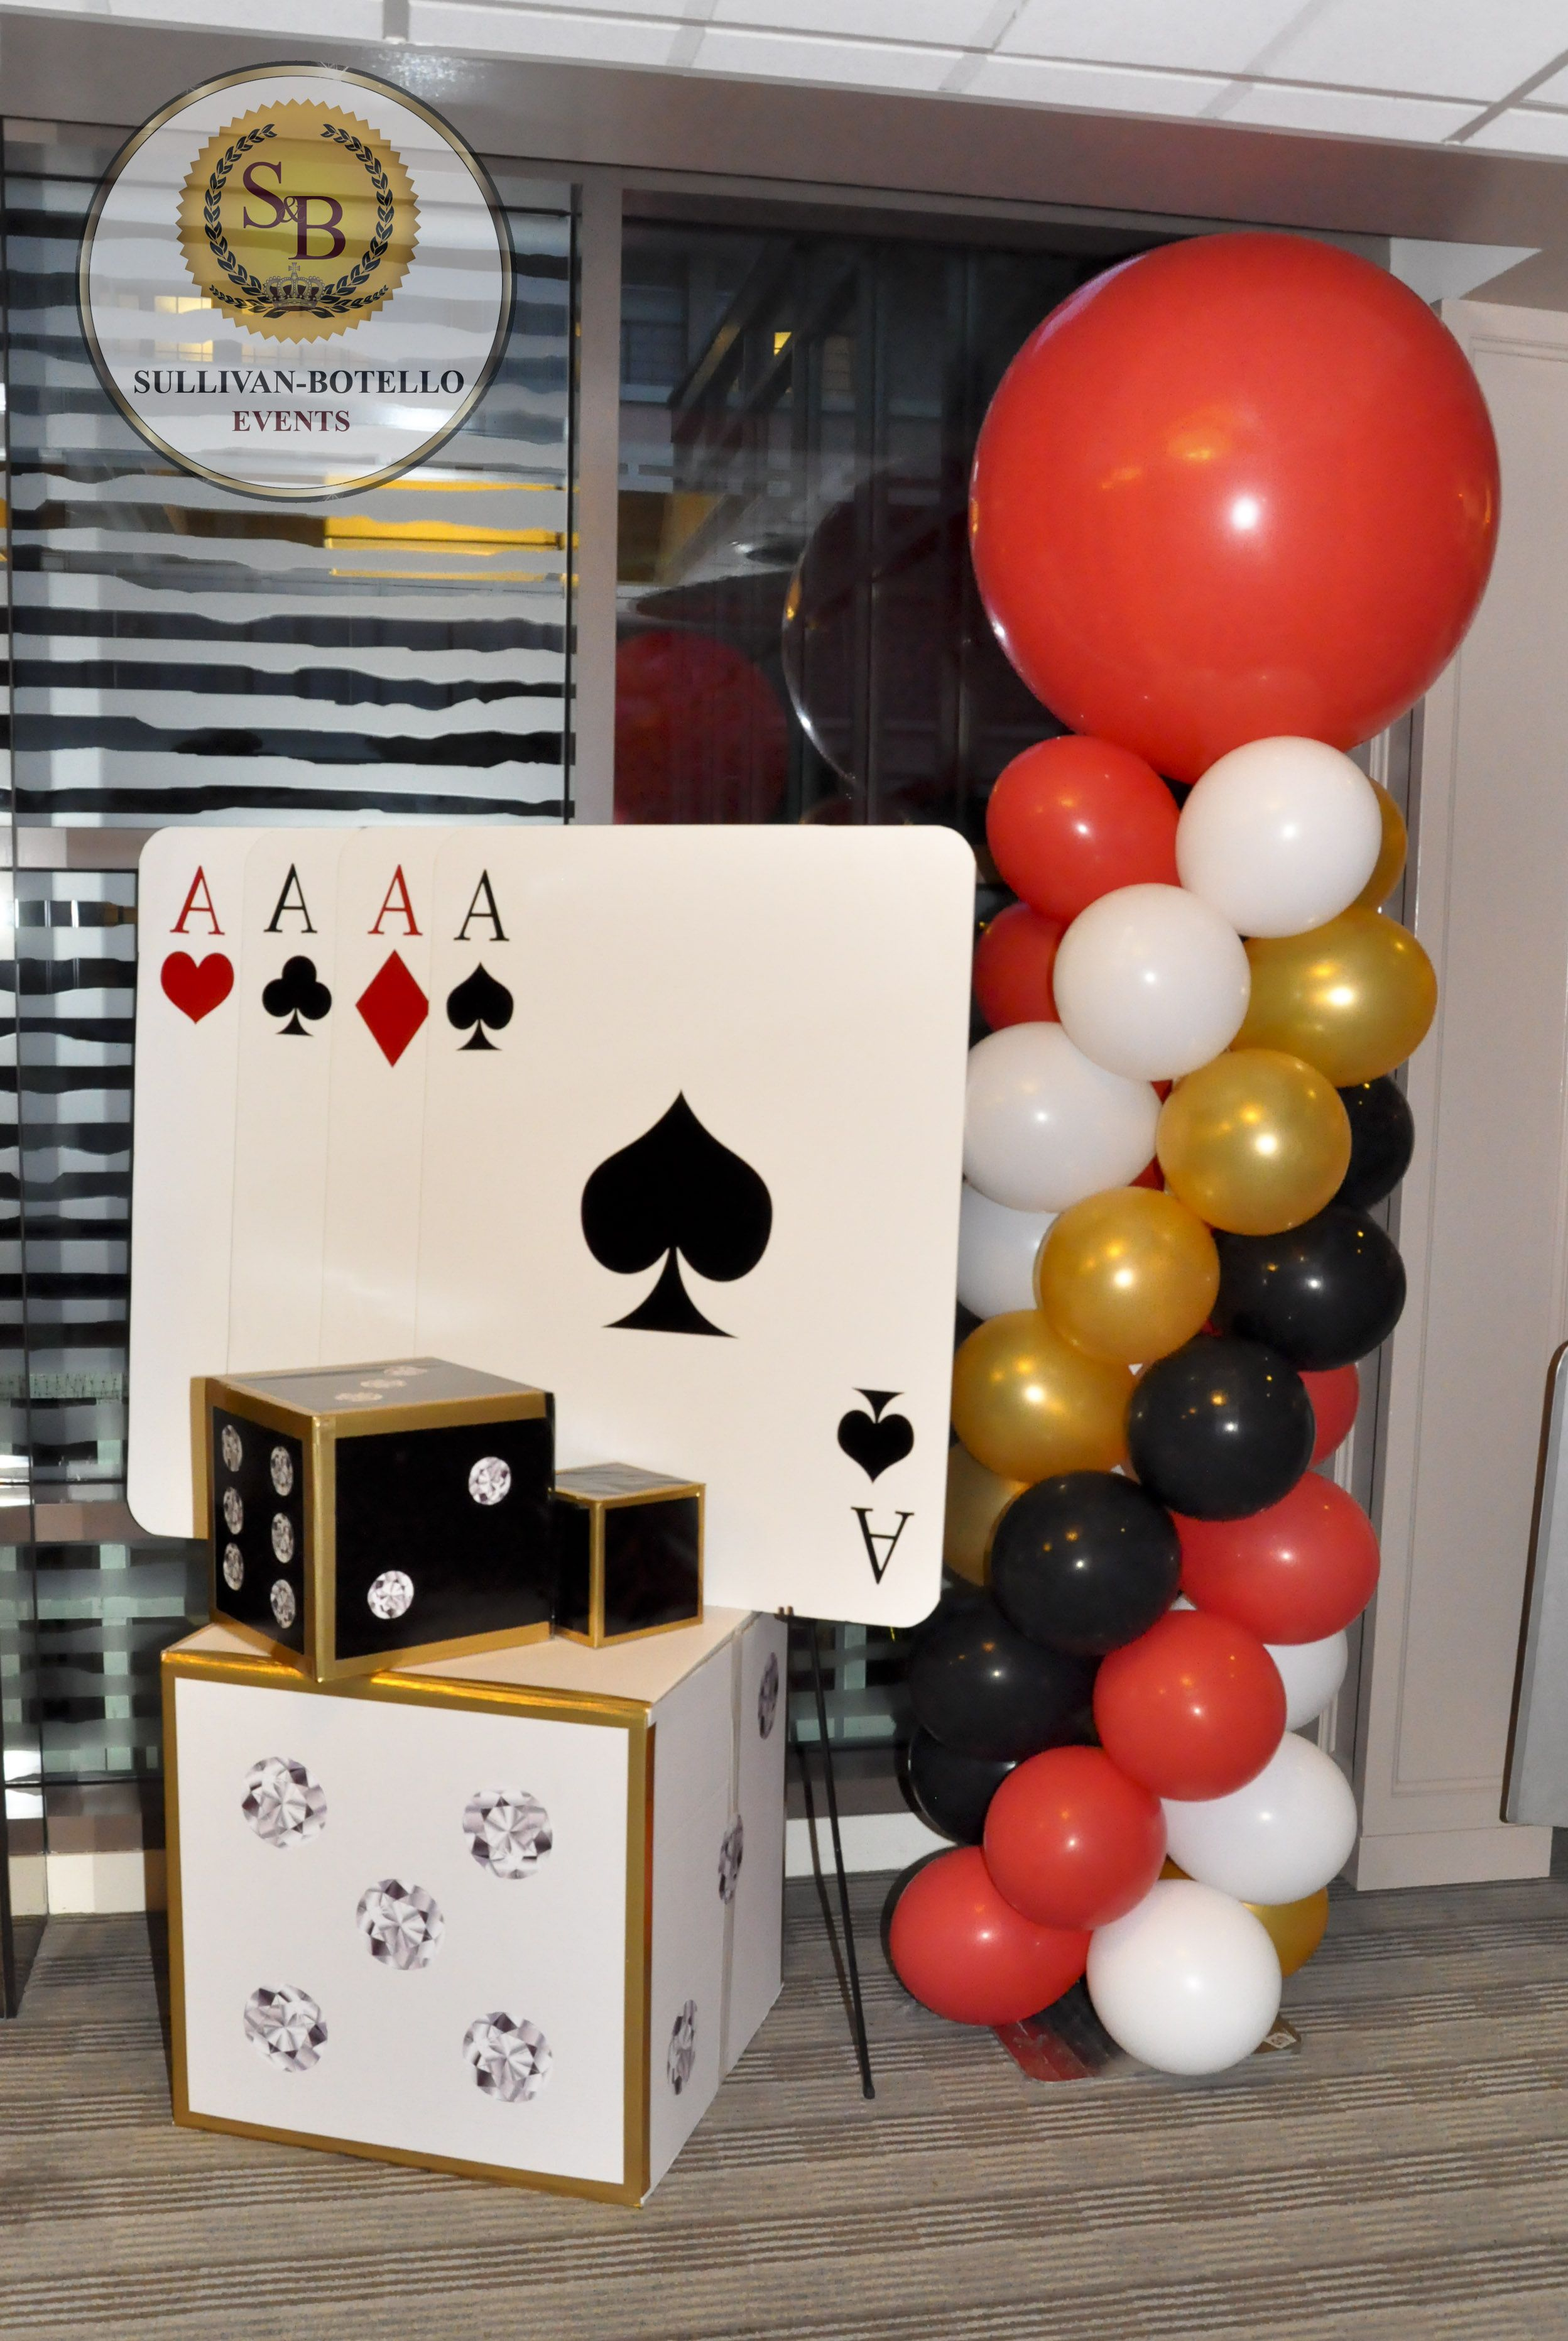 itm casino vegas welcome party image loading s is sign decor decorations to las